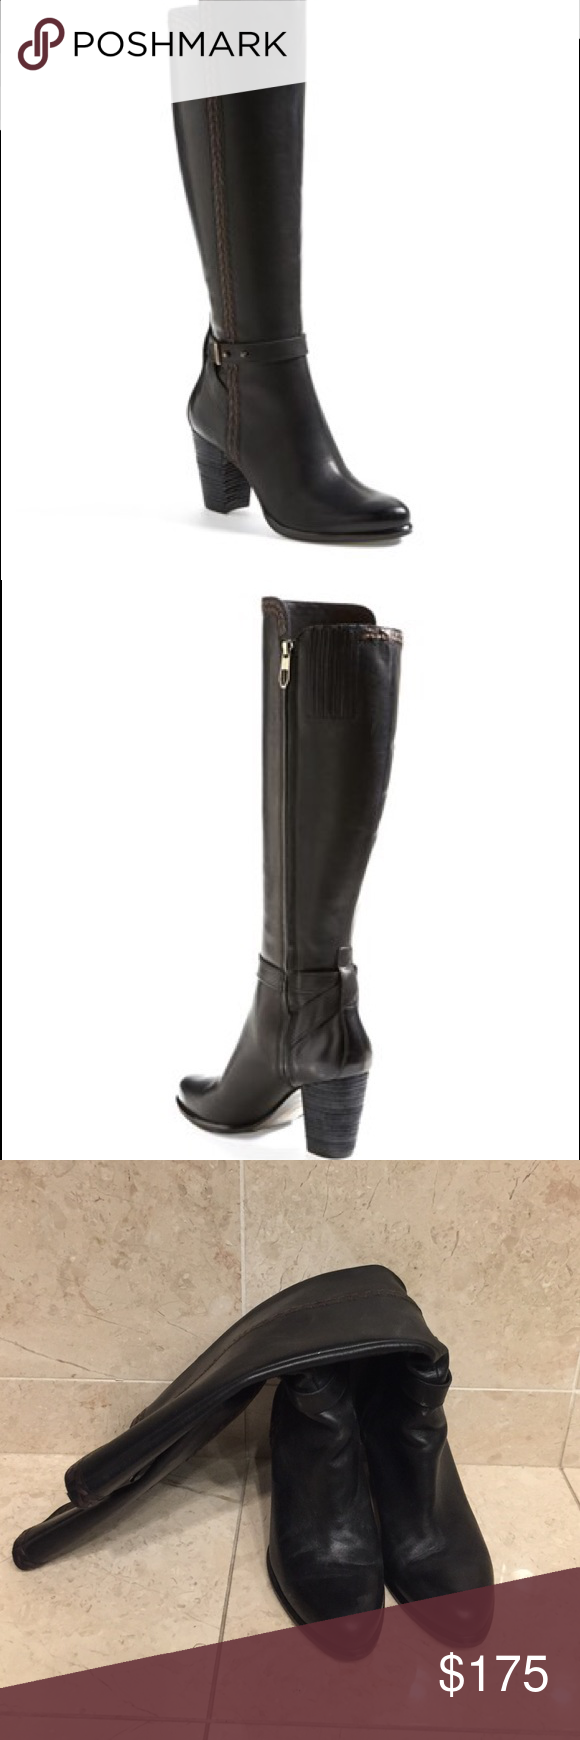 """Ugg Australia 'Claudine' Tall Boot Full-grain leather shapes a striking riding boot crafted with a sleek ankle strap and contrasting whipstitch trim for a hint of rustic flair. 3 1/4"""" heel  17"""" front boot shaft, 16"""" back boot shaft; 15"""" calf circumference. Side zip closure. Leather upper/leather and UGGpure™ textile lining/leather and rubber sole. By UGG Australia; imported. Worn a few times. See pictures for bottom of shoe. In great condition. UGG Shoes Heeled Boots"""